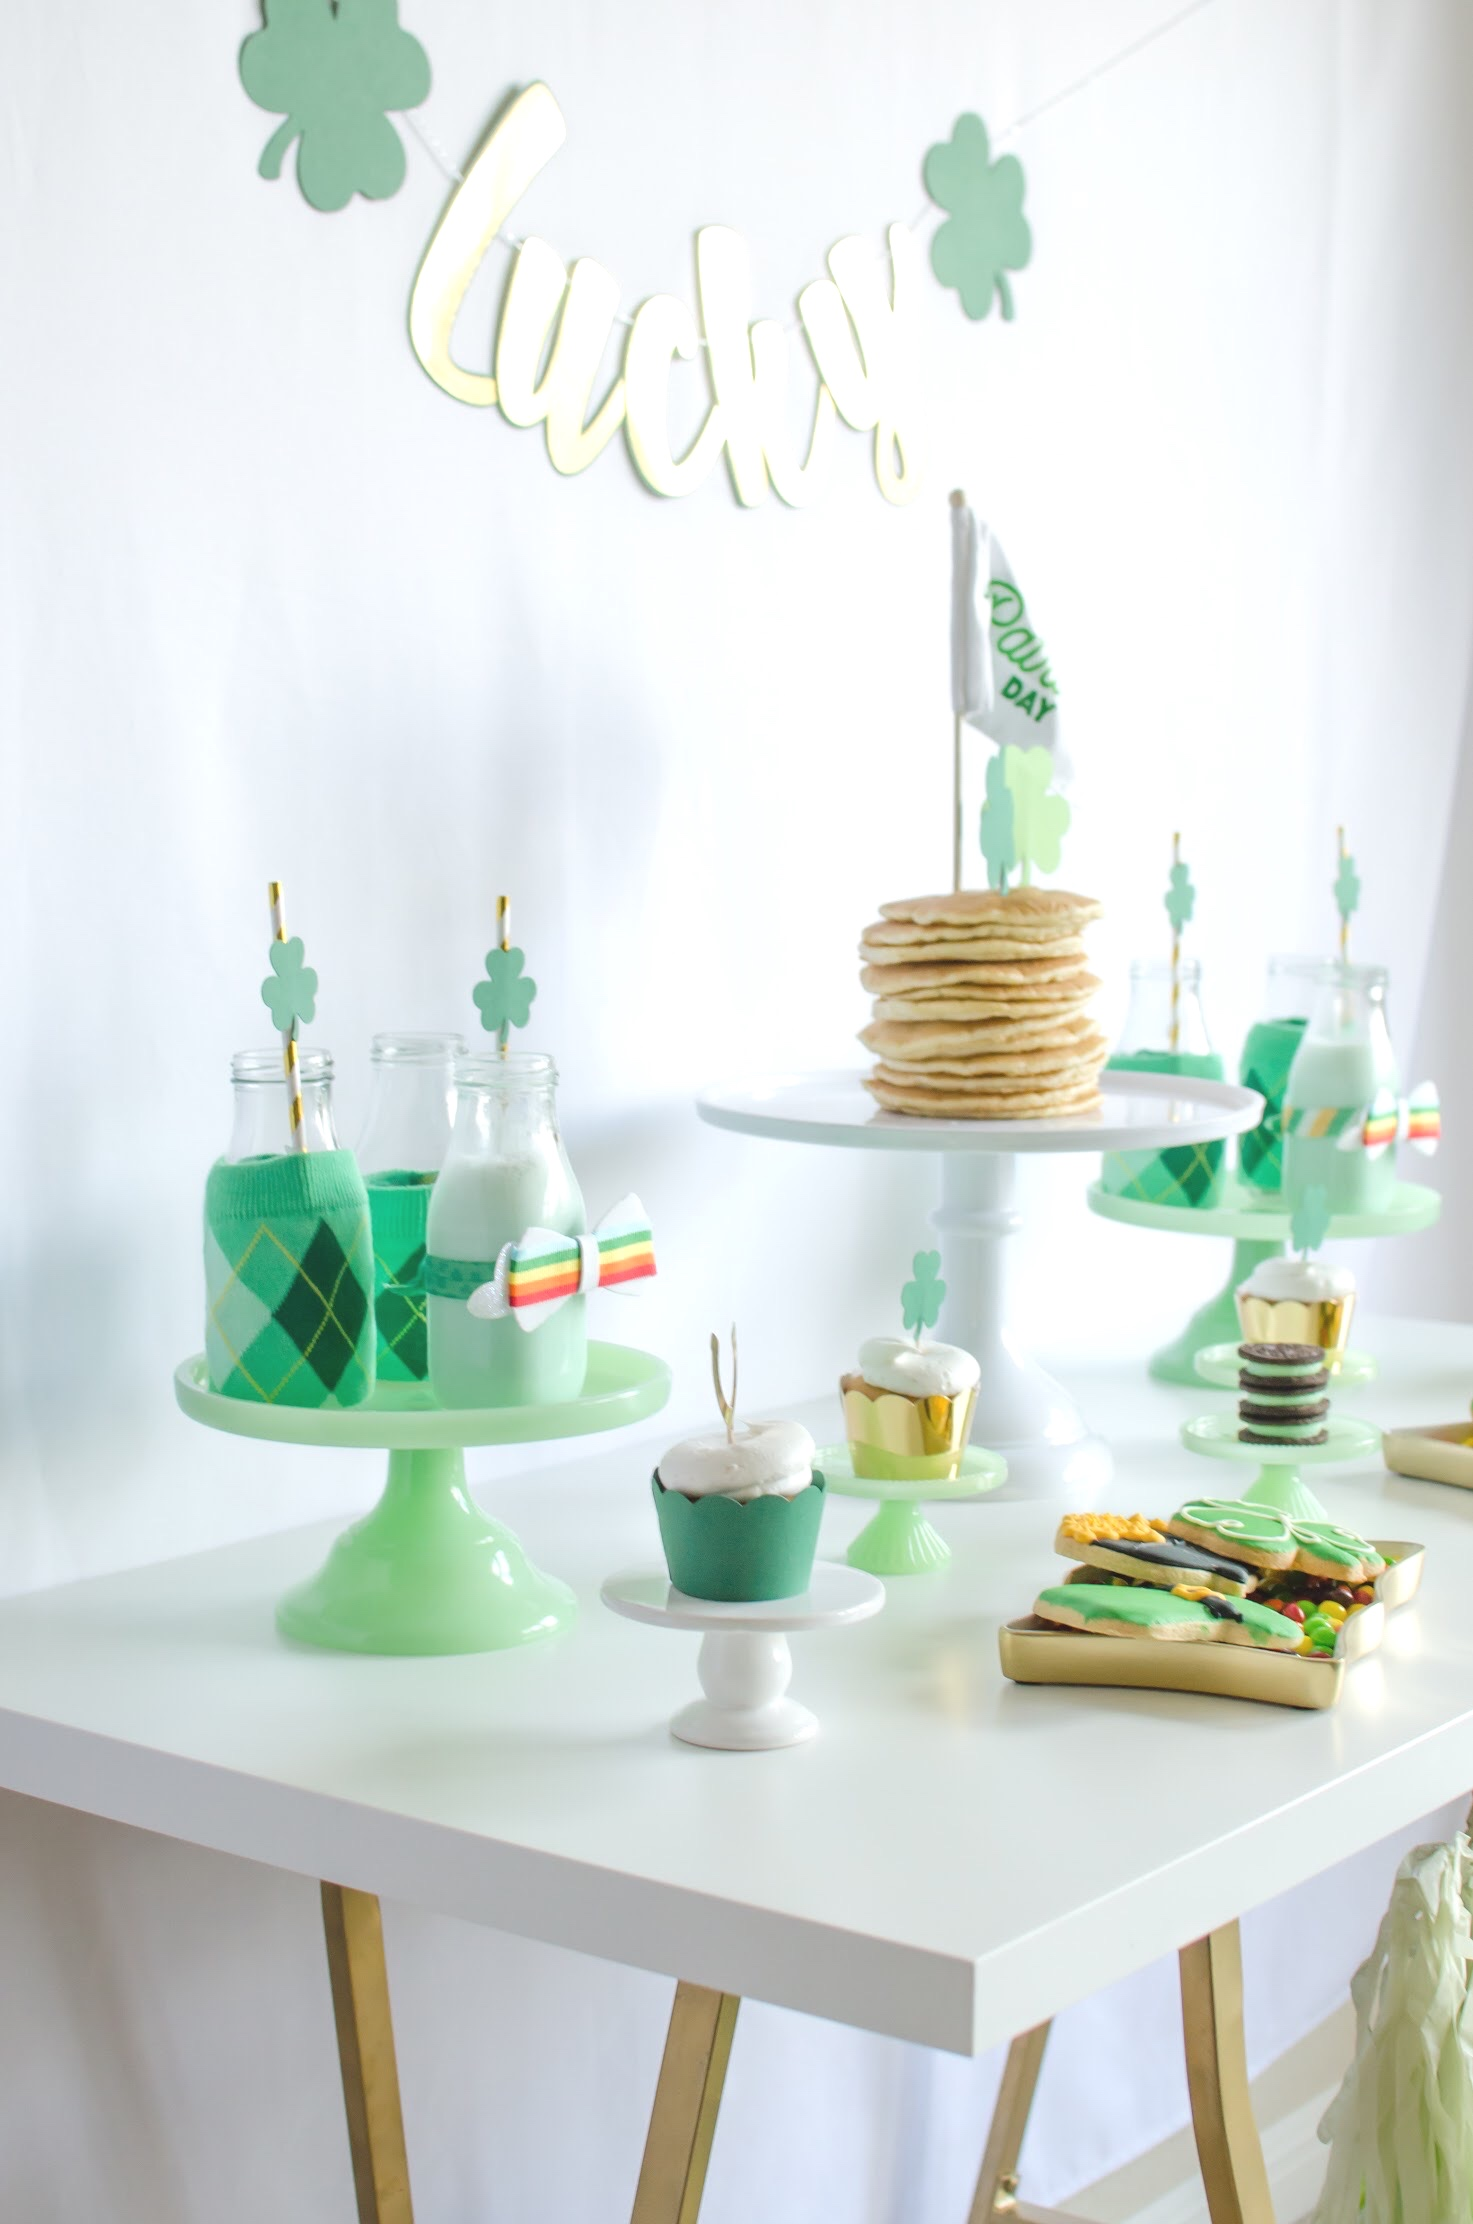 Find out how to create this greentastic Saint Patricks Day Breakfast Party on Mint Event Design www.minteventdesign.com #partyideas #partydecorations #saintpatricksday #stpatricksday #tablescape #desserttable